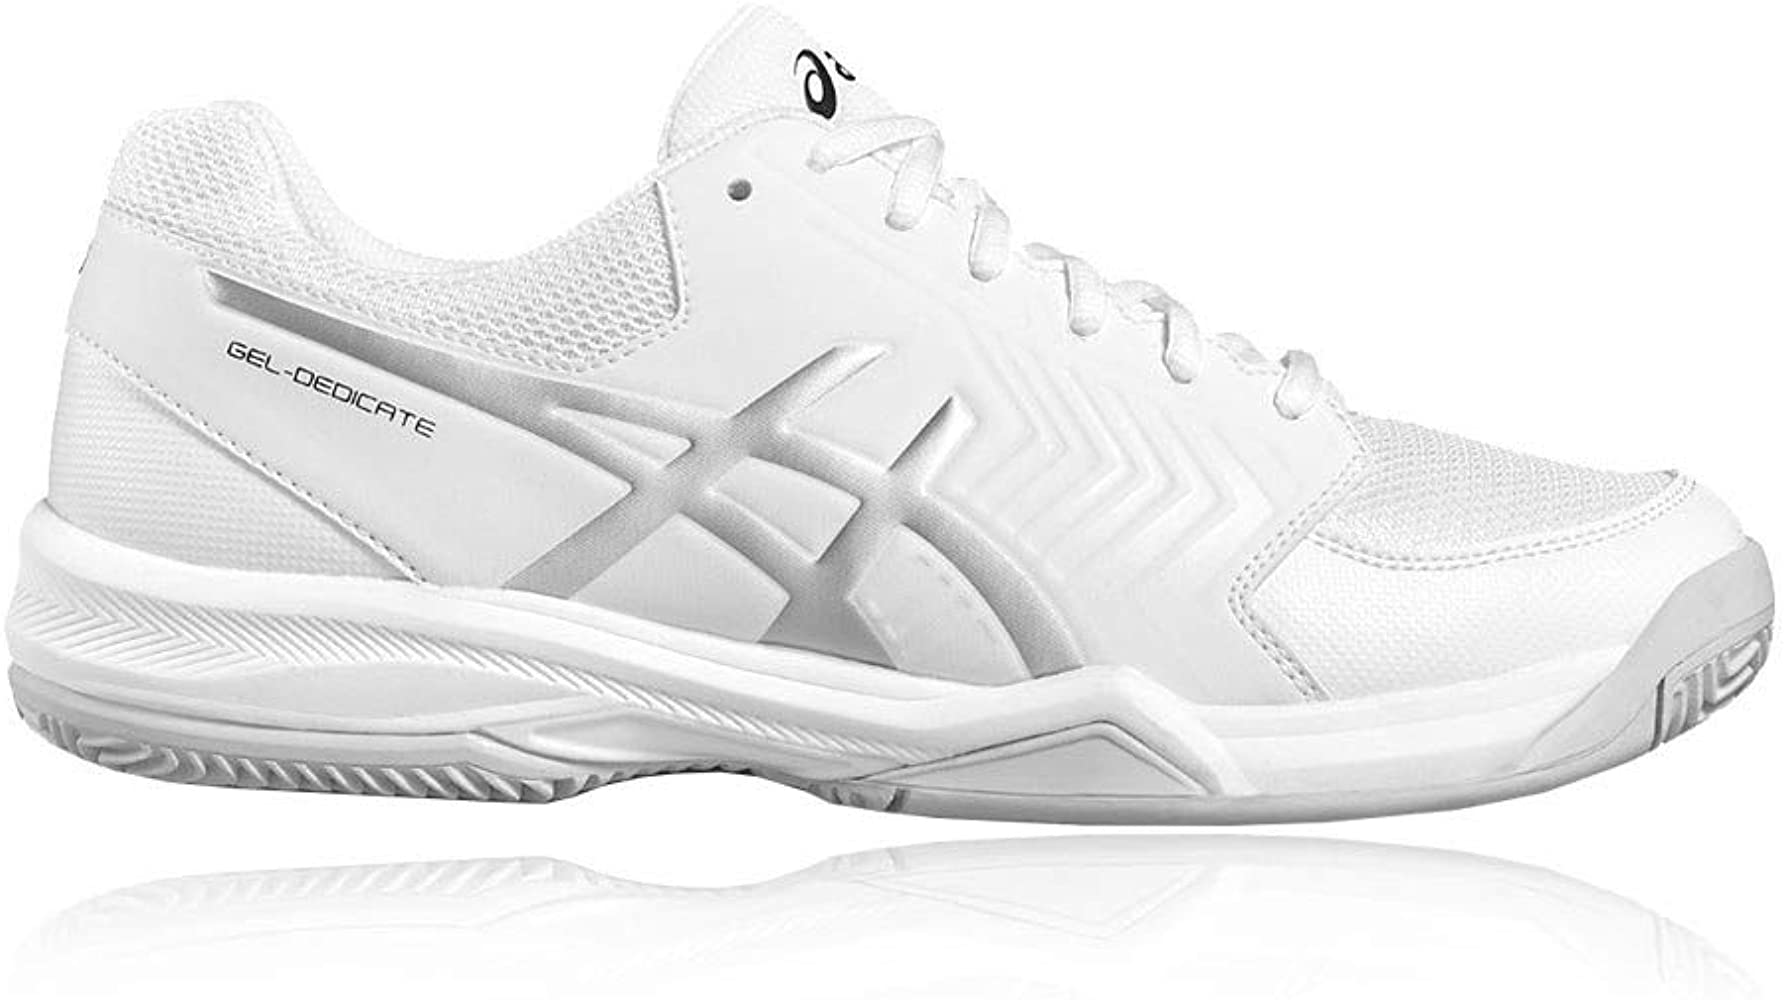 Asics Gel-Dedicate 5 Zapatilla De Tenis - 40: Amazon.es: Zapatos y ...